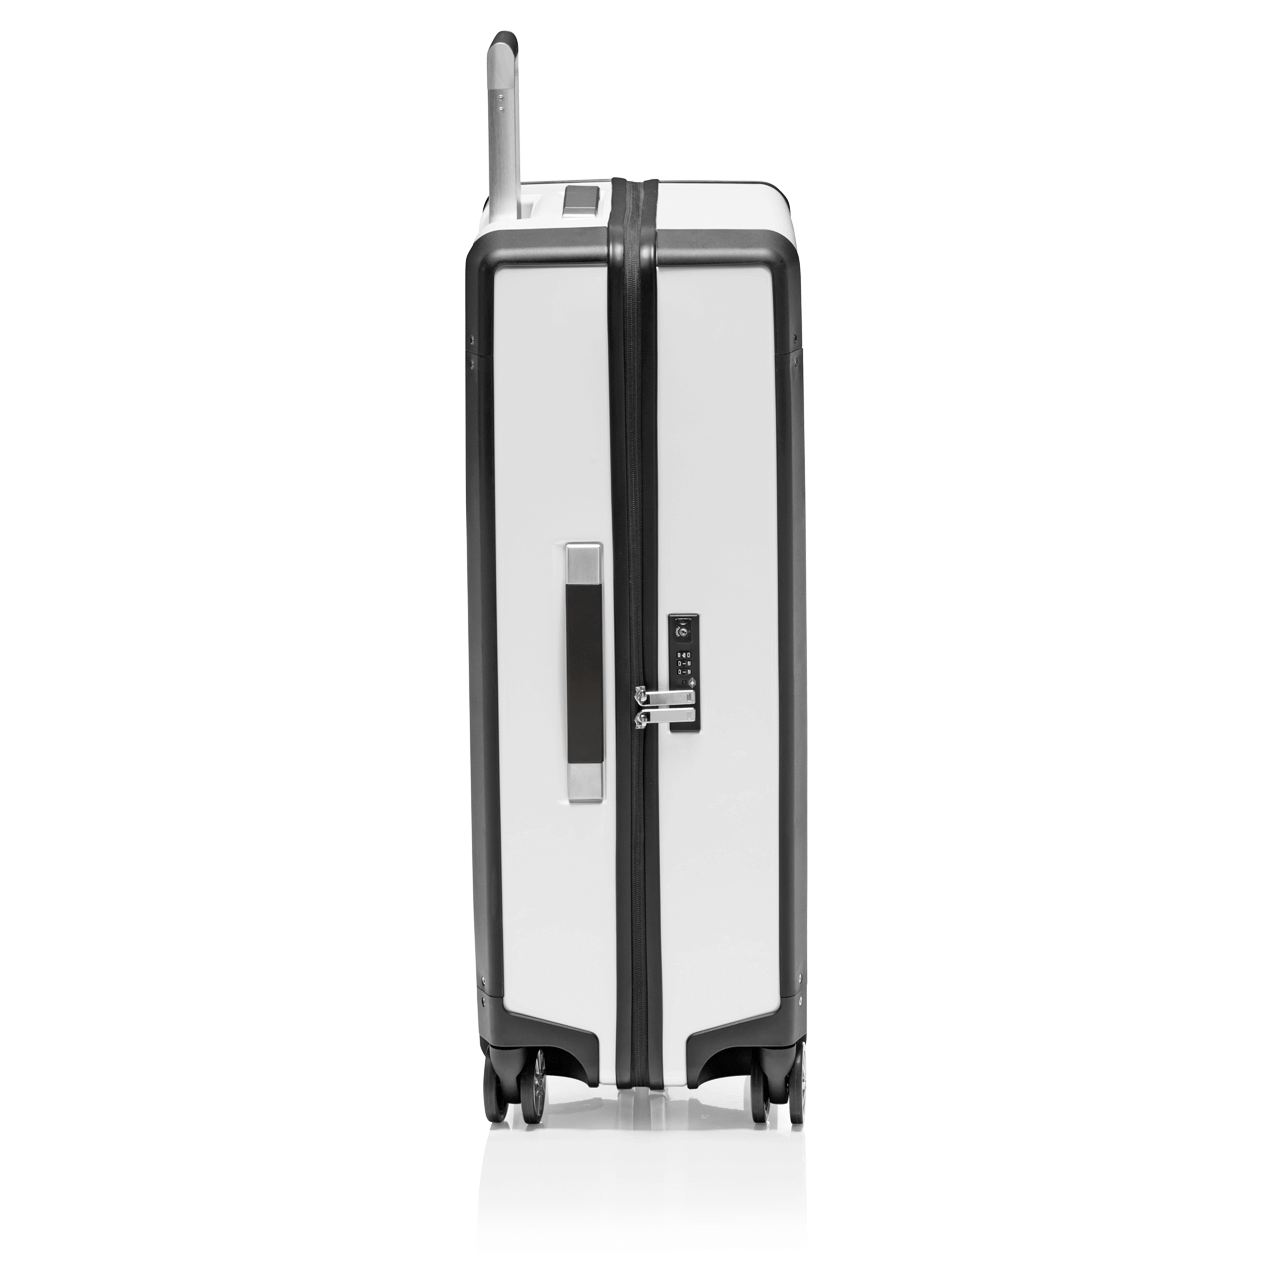 ROADSTER HARDCASE TROLLEY L - фото 2